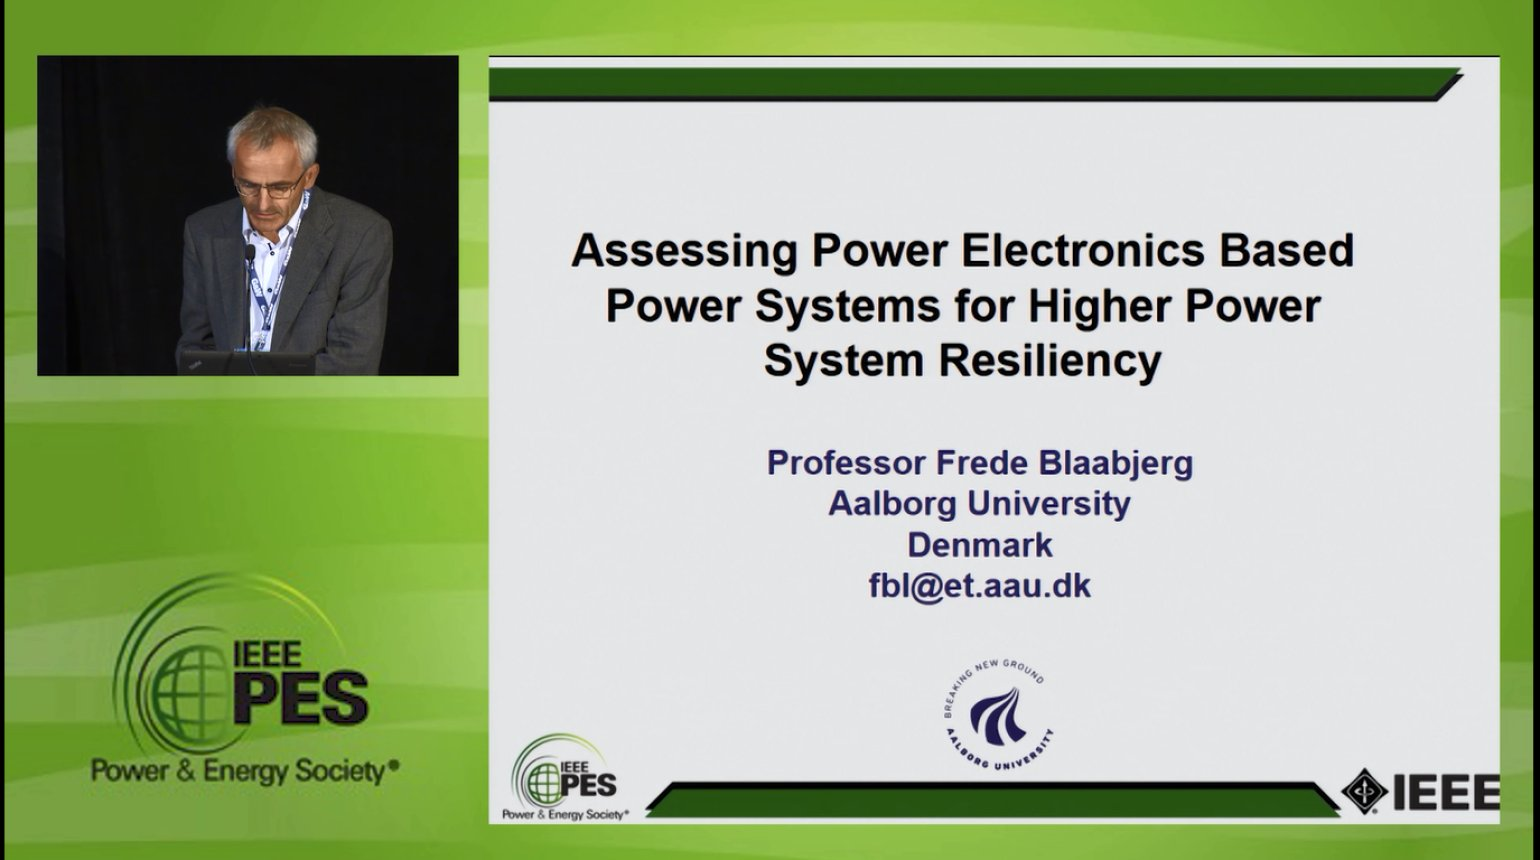 Resiliency in the Power Grid - Assessing Power Electronics Based Power Systems for Higher Power System Resiliency (Video)